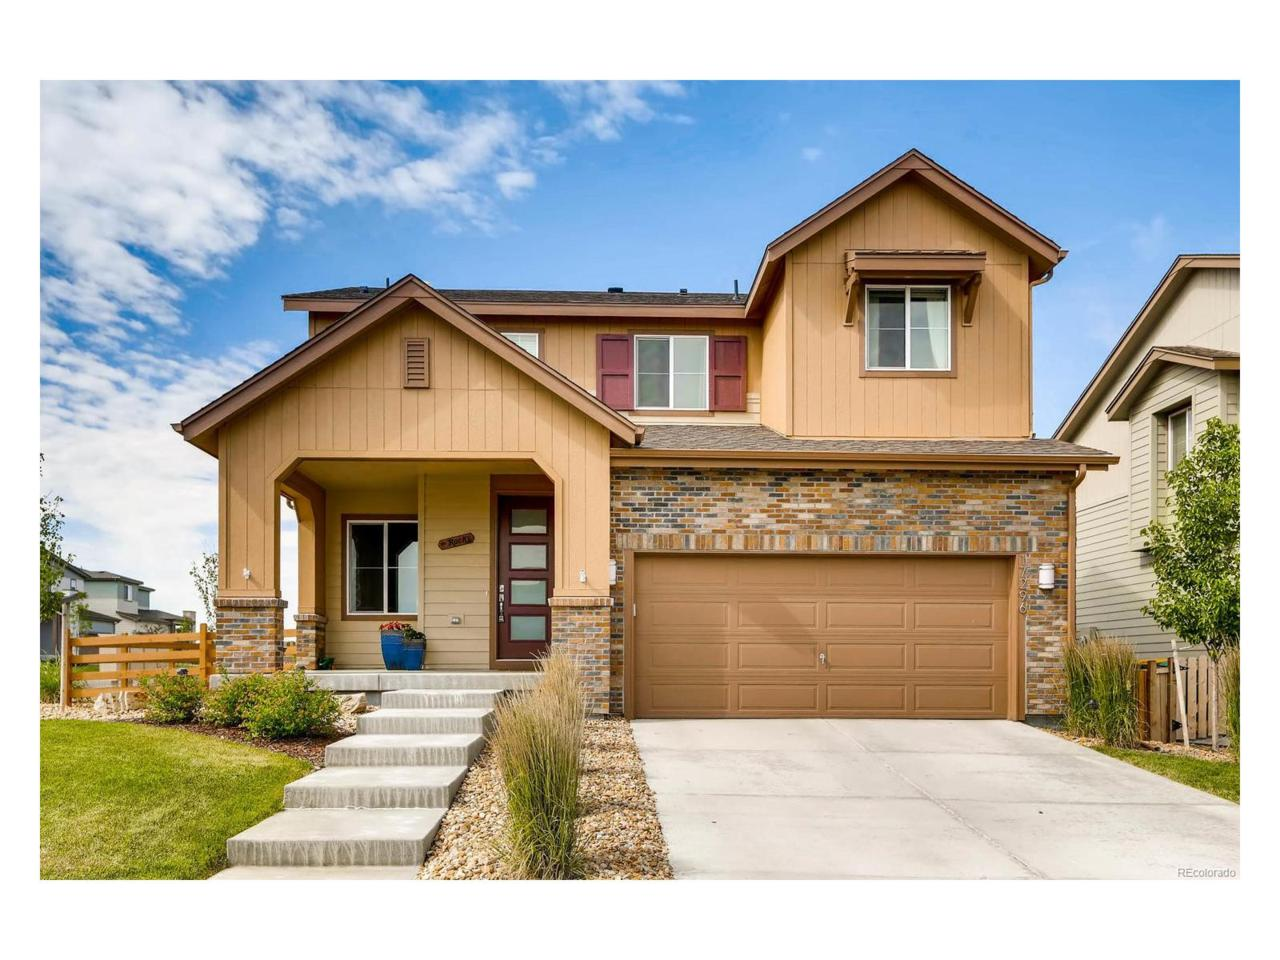 17296 E 108th Place, Commerce City, CO 80022 (MLS #2969911) :: 8z Real Estate